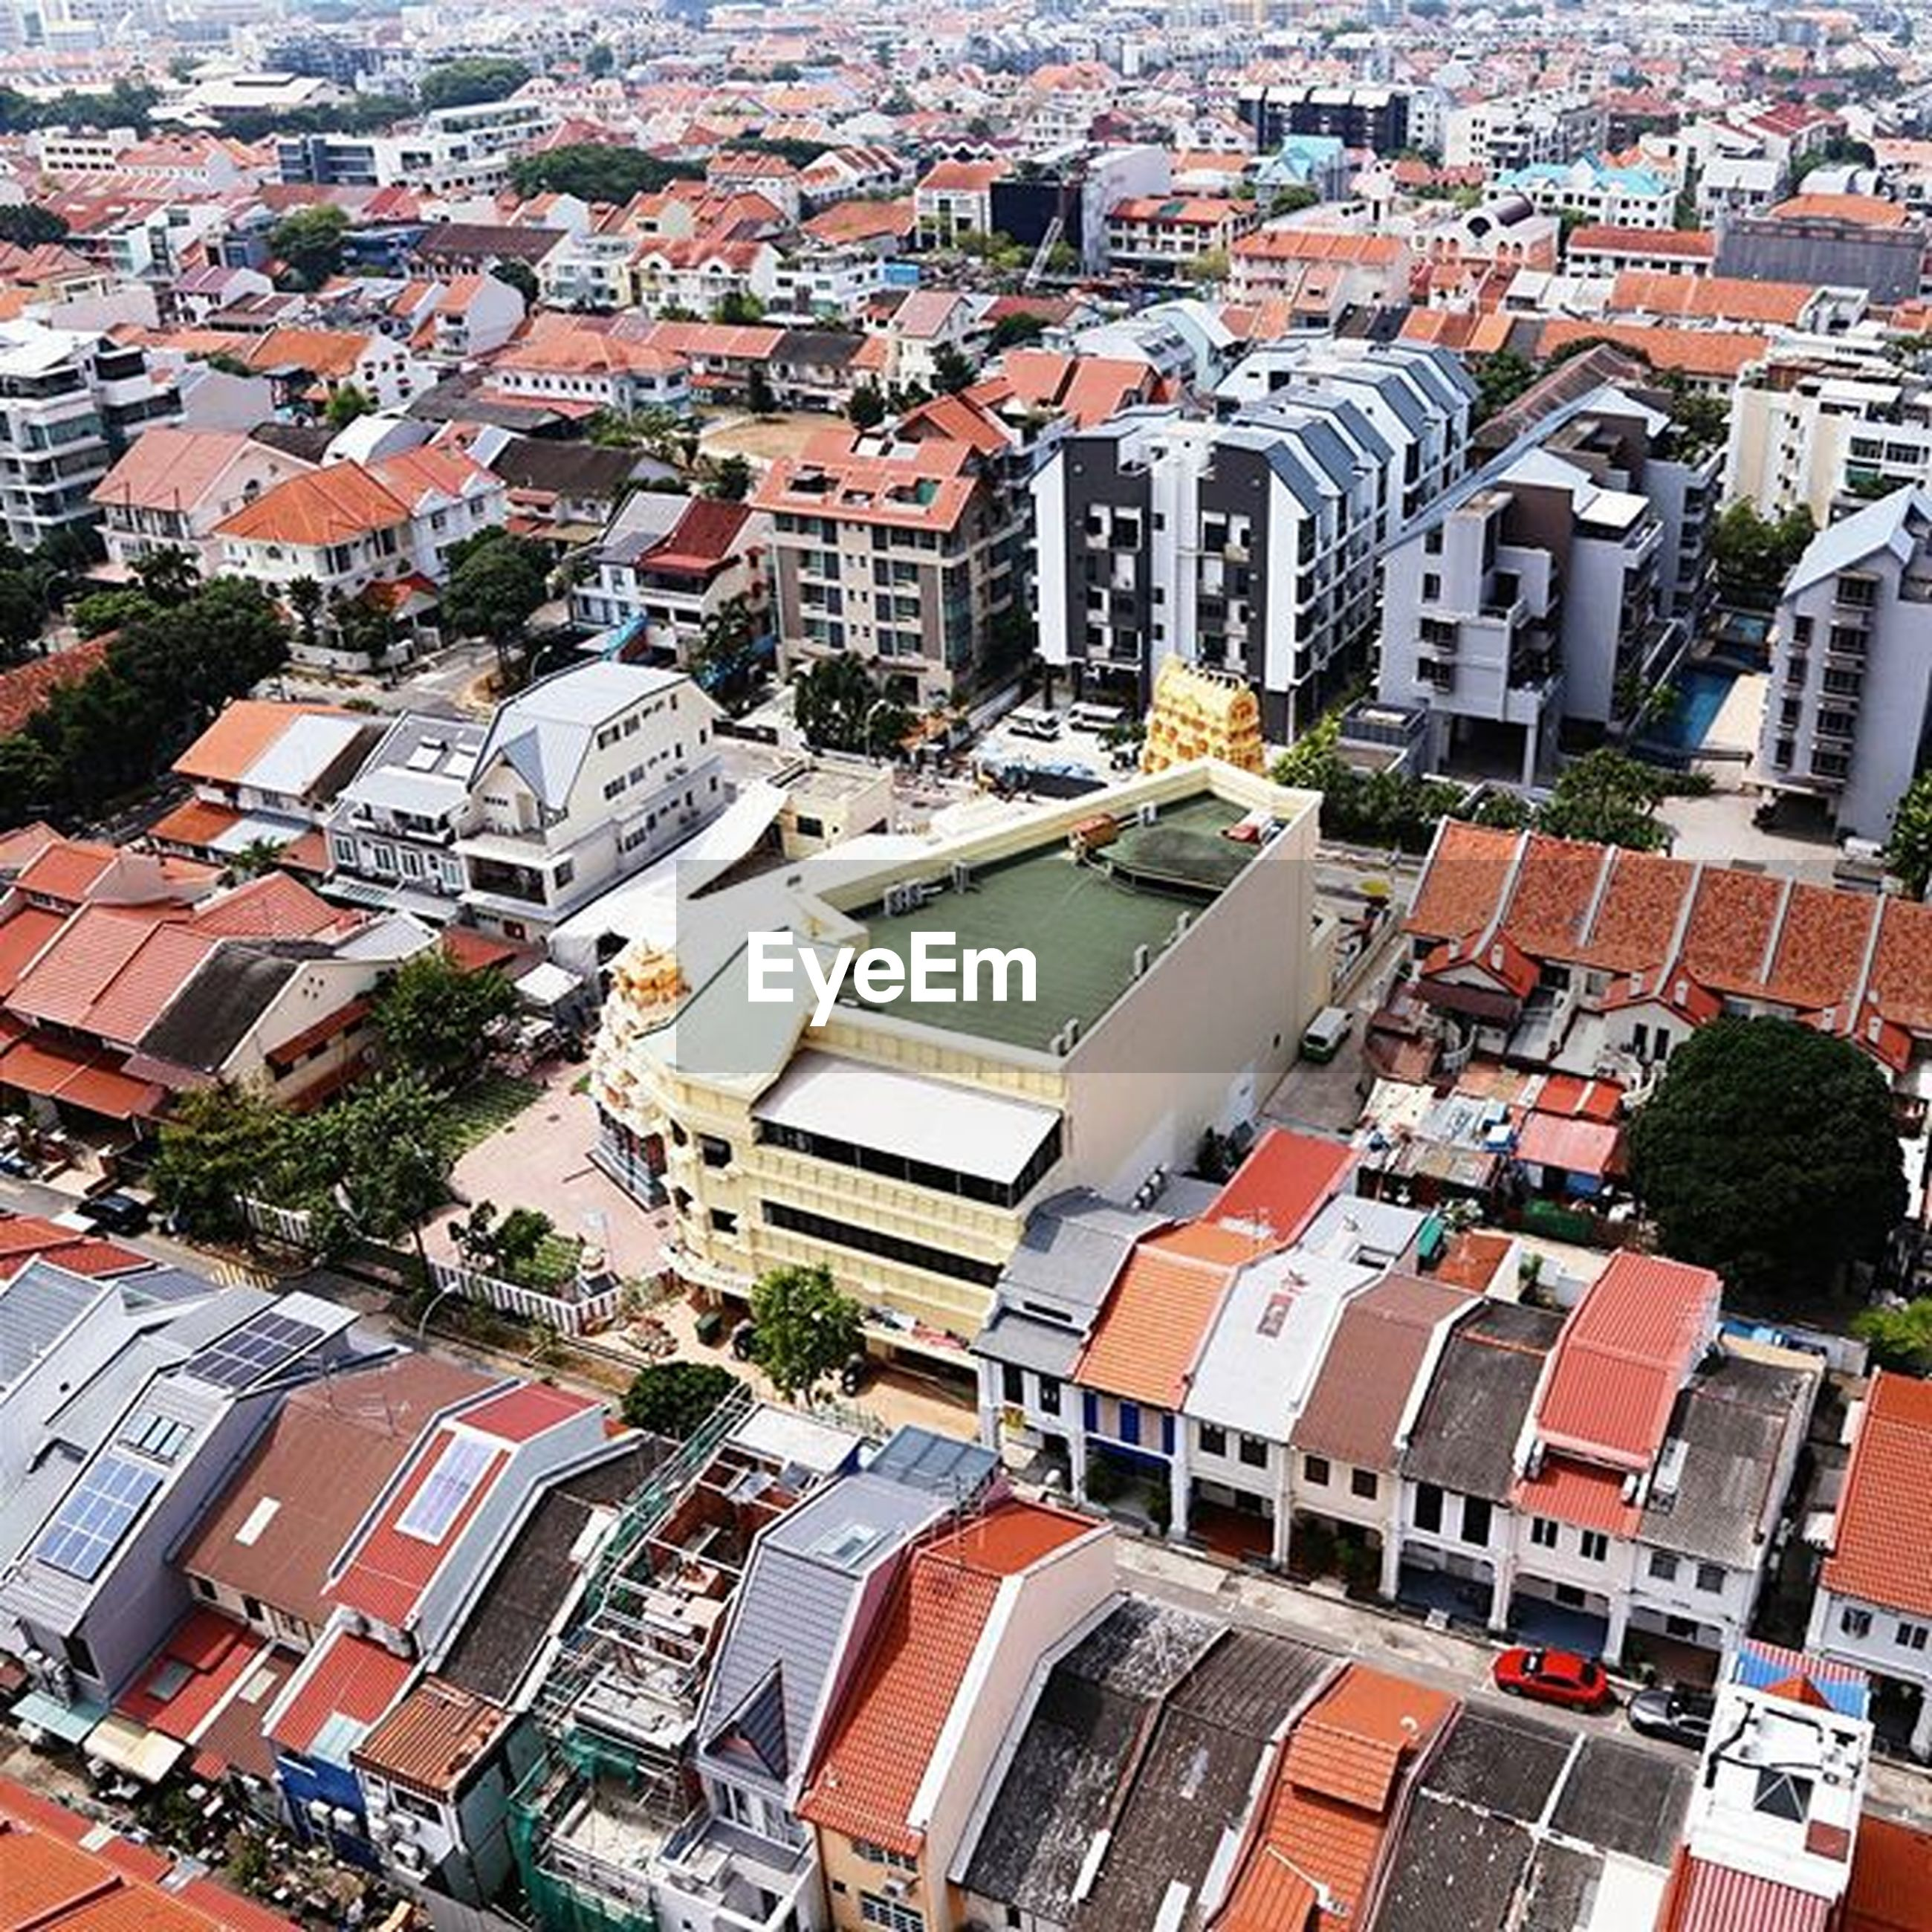 building exterior, architecture, built structure, high angle view, cityscape, city, crowded, residential district, aerial view, residential structure, residential building, roof, city life, elevated view, house, town, townscape, day, outdoors, community